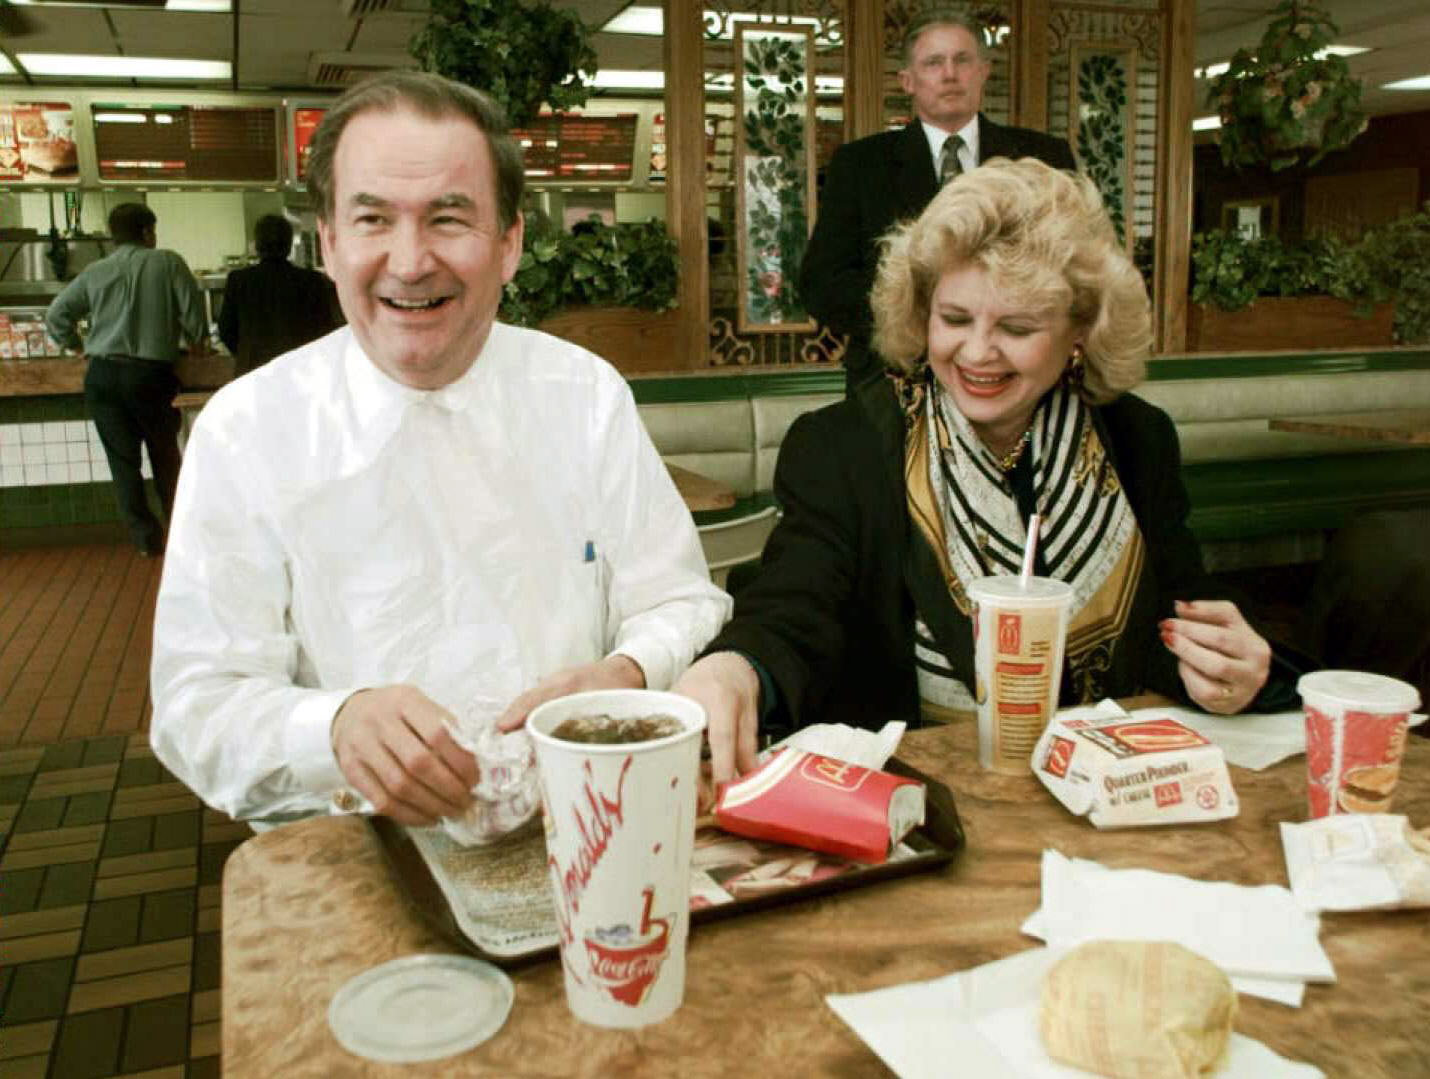 Republican presidential candidate Pat Buchanan and wife Shelley eat lunch at the local McDonald's restaurant in Greenwood, South Carolina, during a break while driving across the state for campaign stops. Feb. 28, 1996.